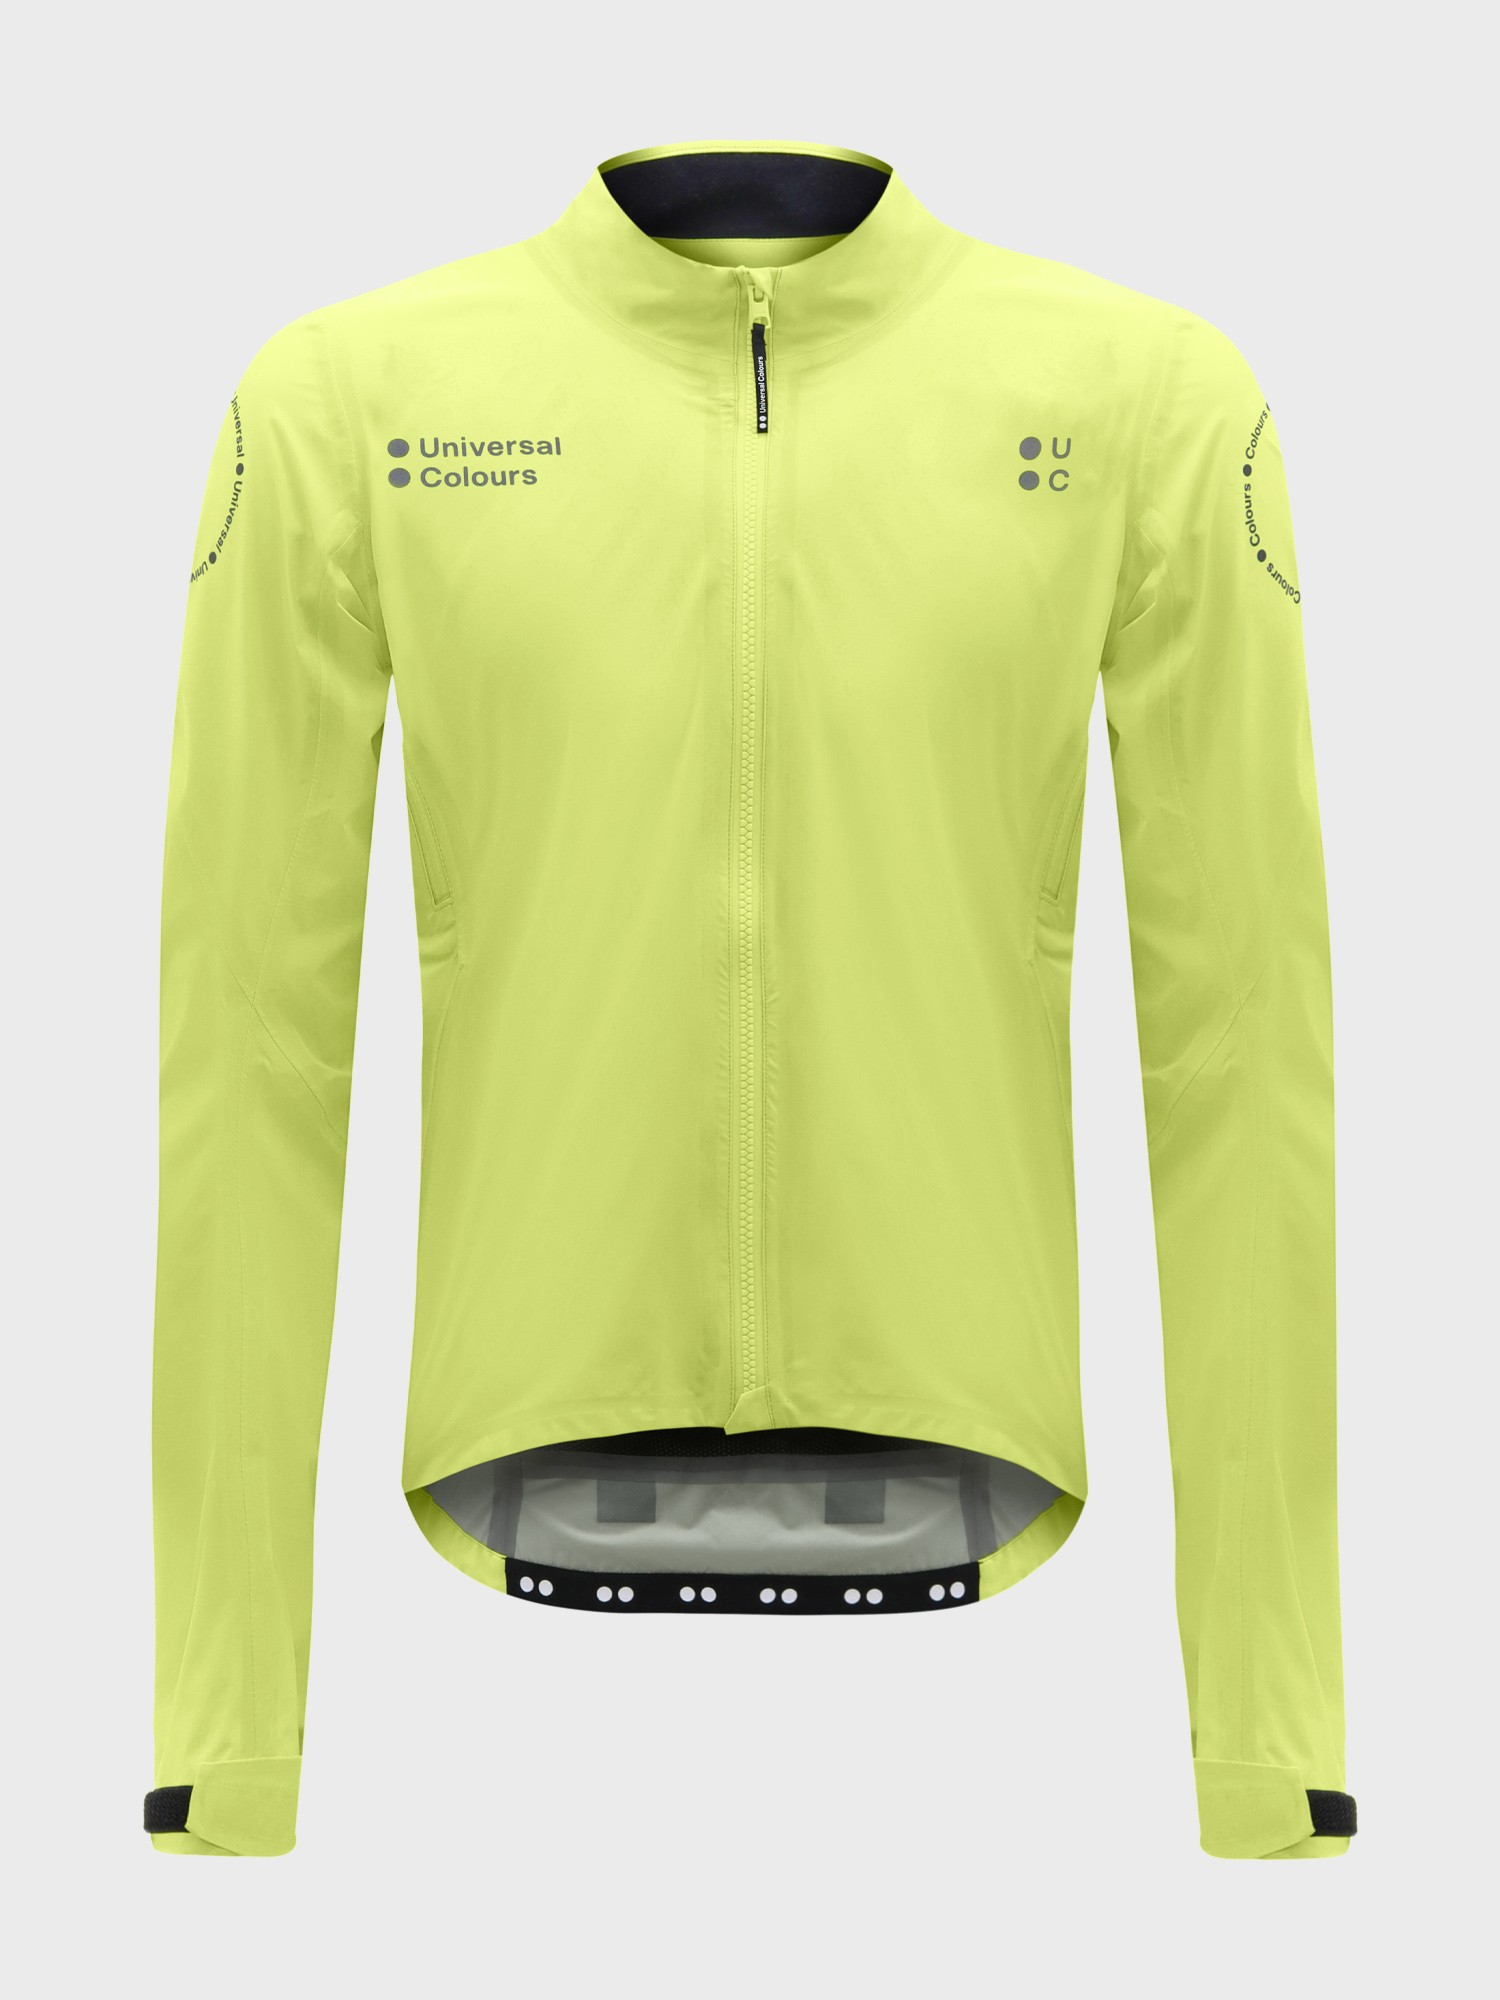 Chroma Men's Rain Jacket